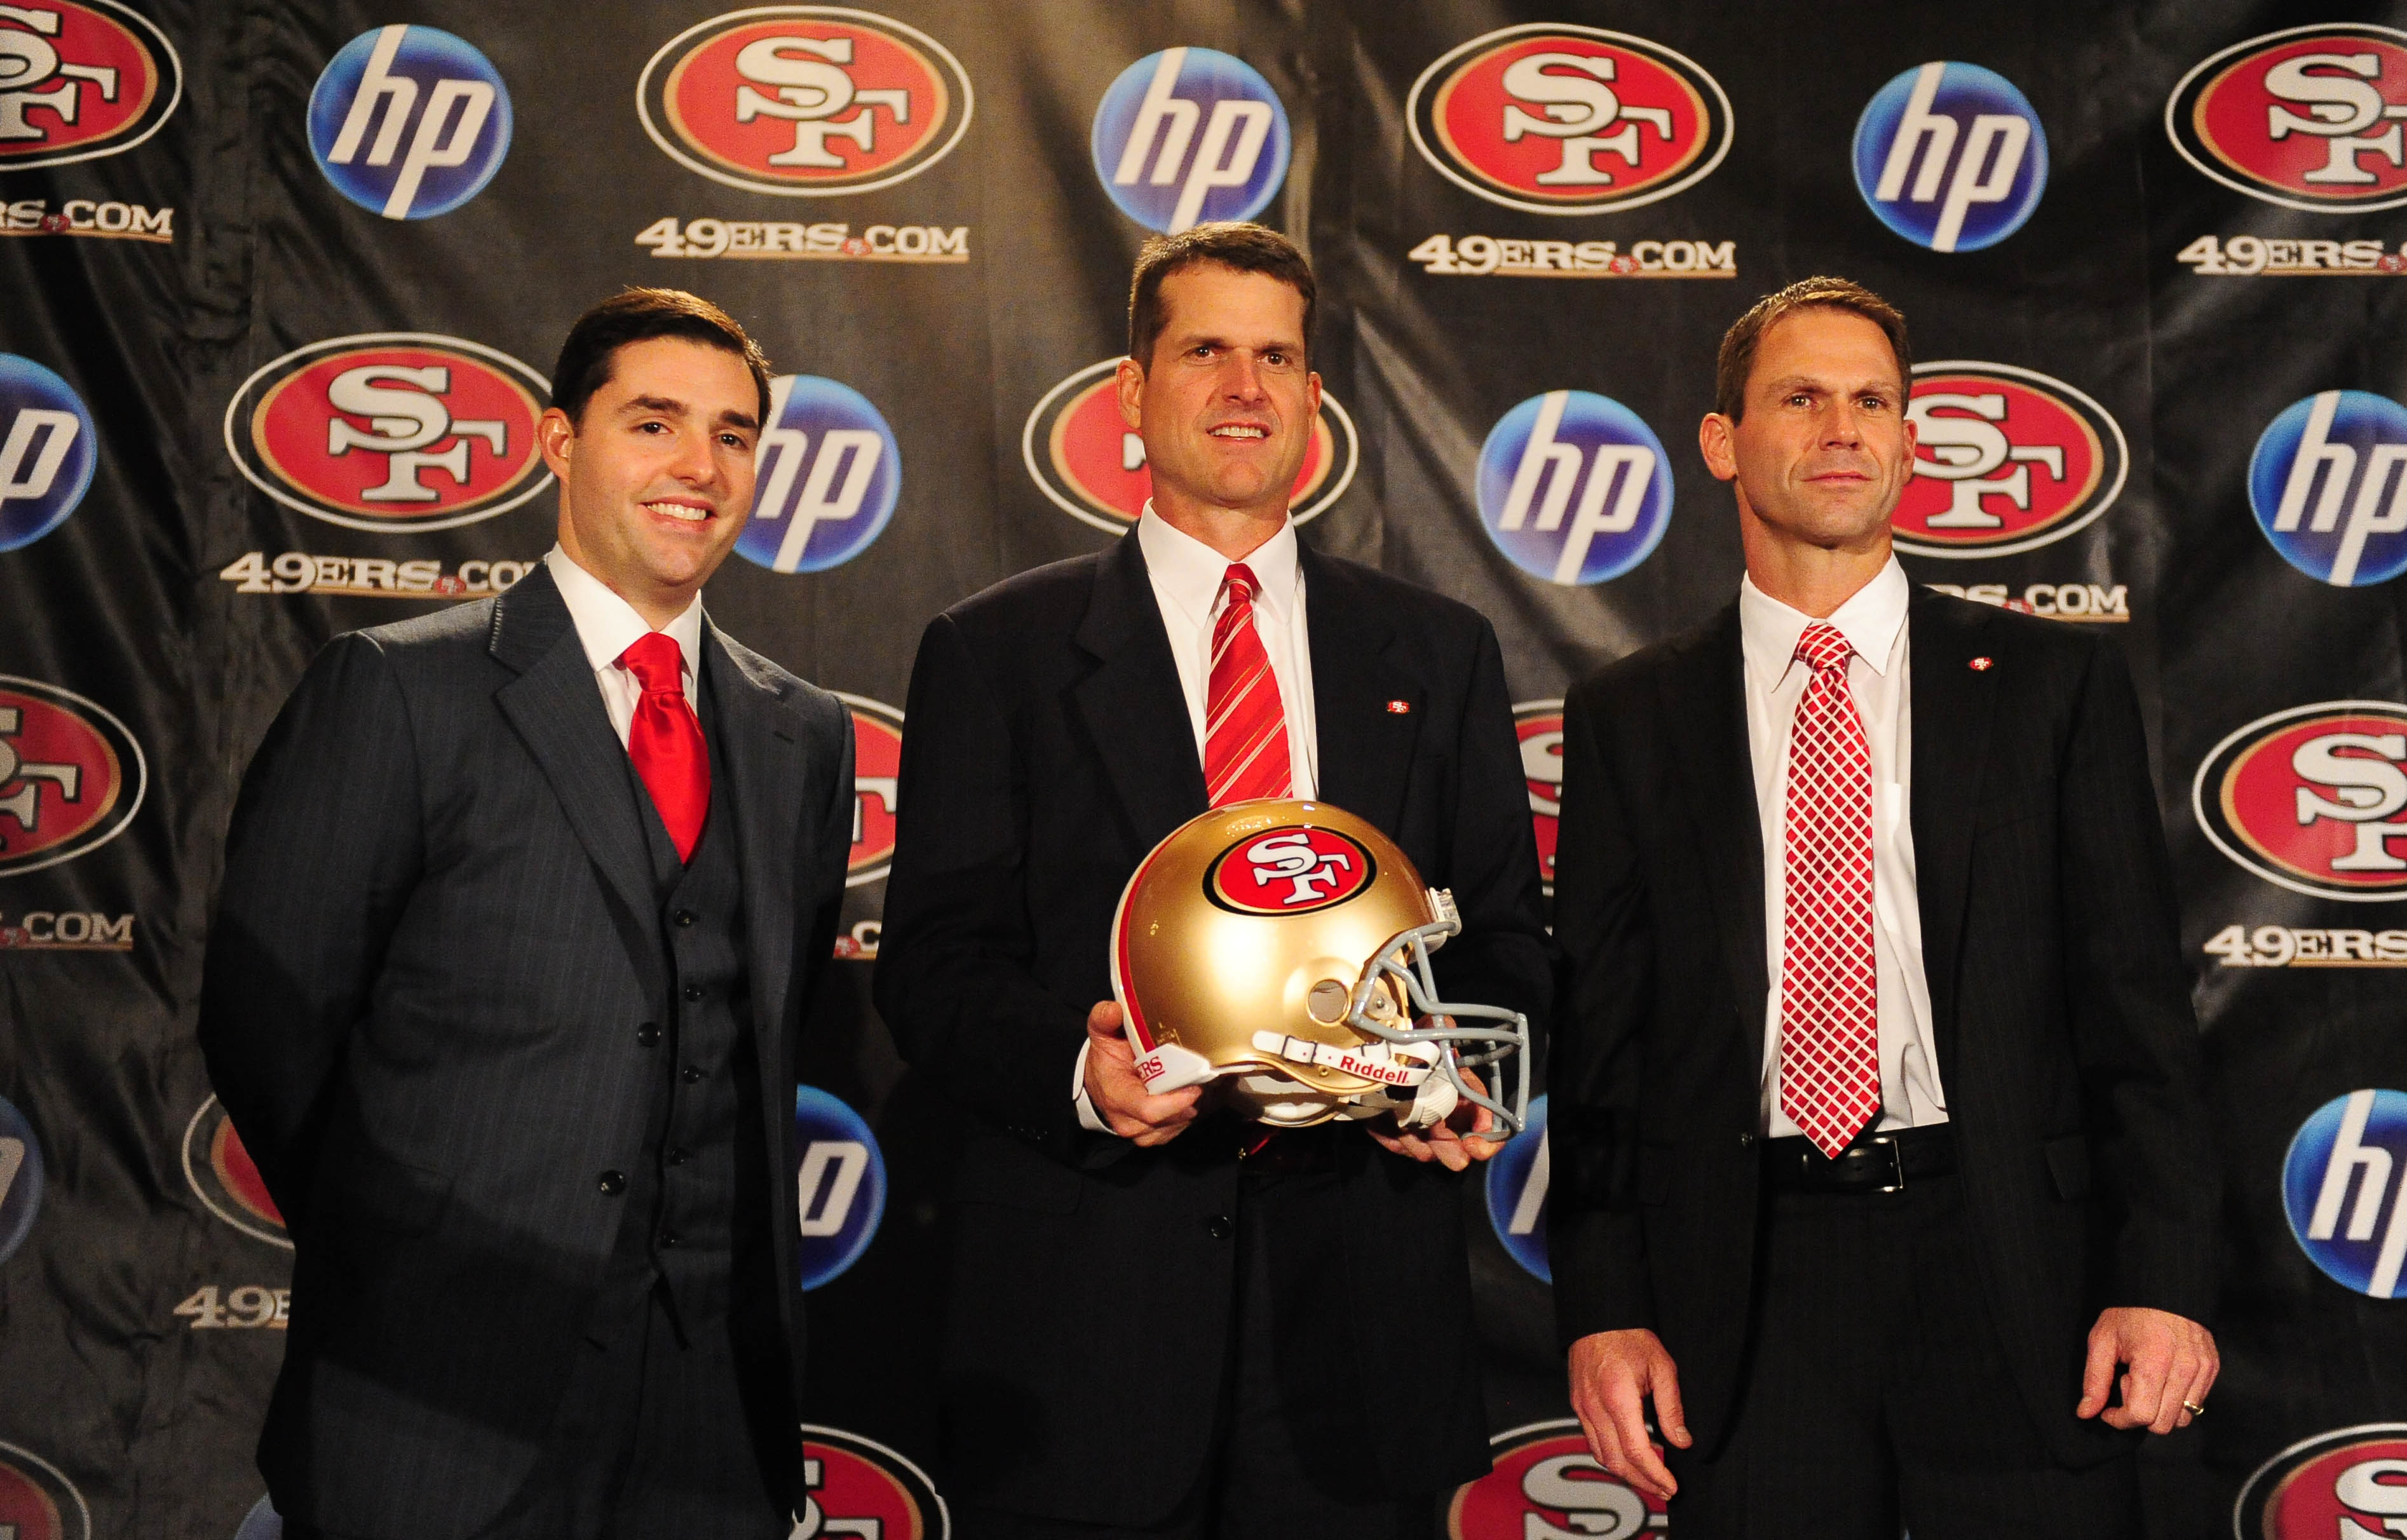 Courtesy of USA Today: No one expected immediate success when the 49ers hired Harbaugh in 2011.